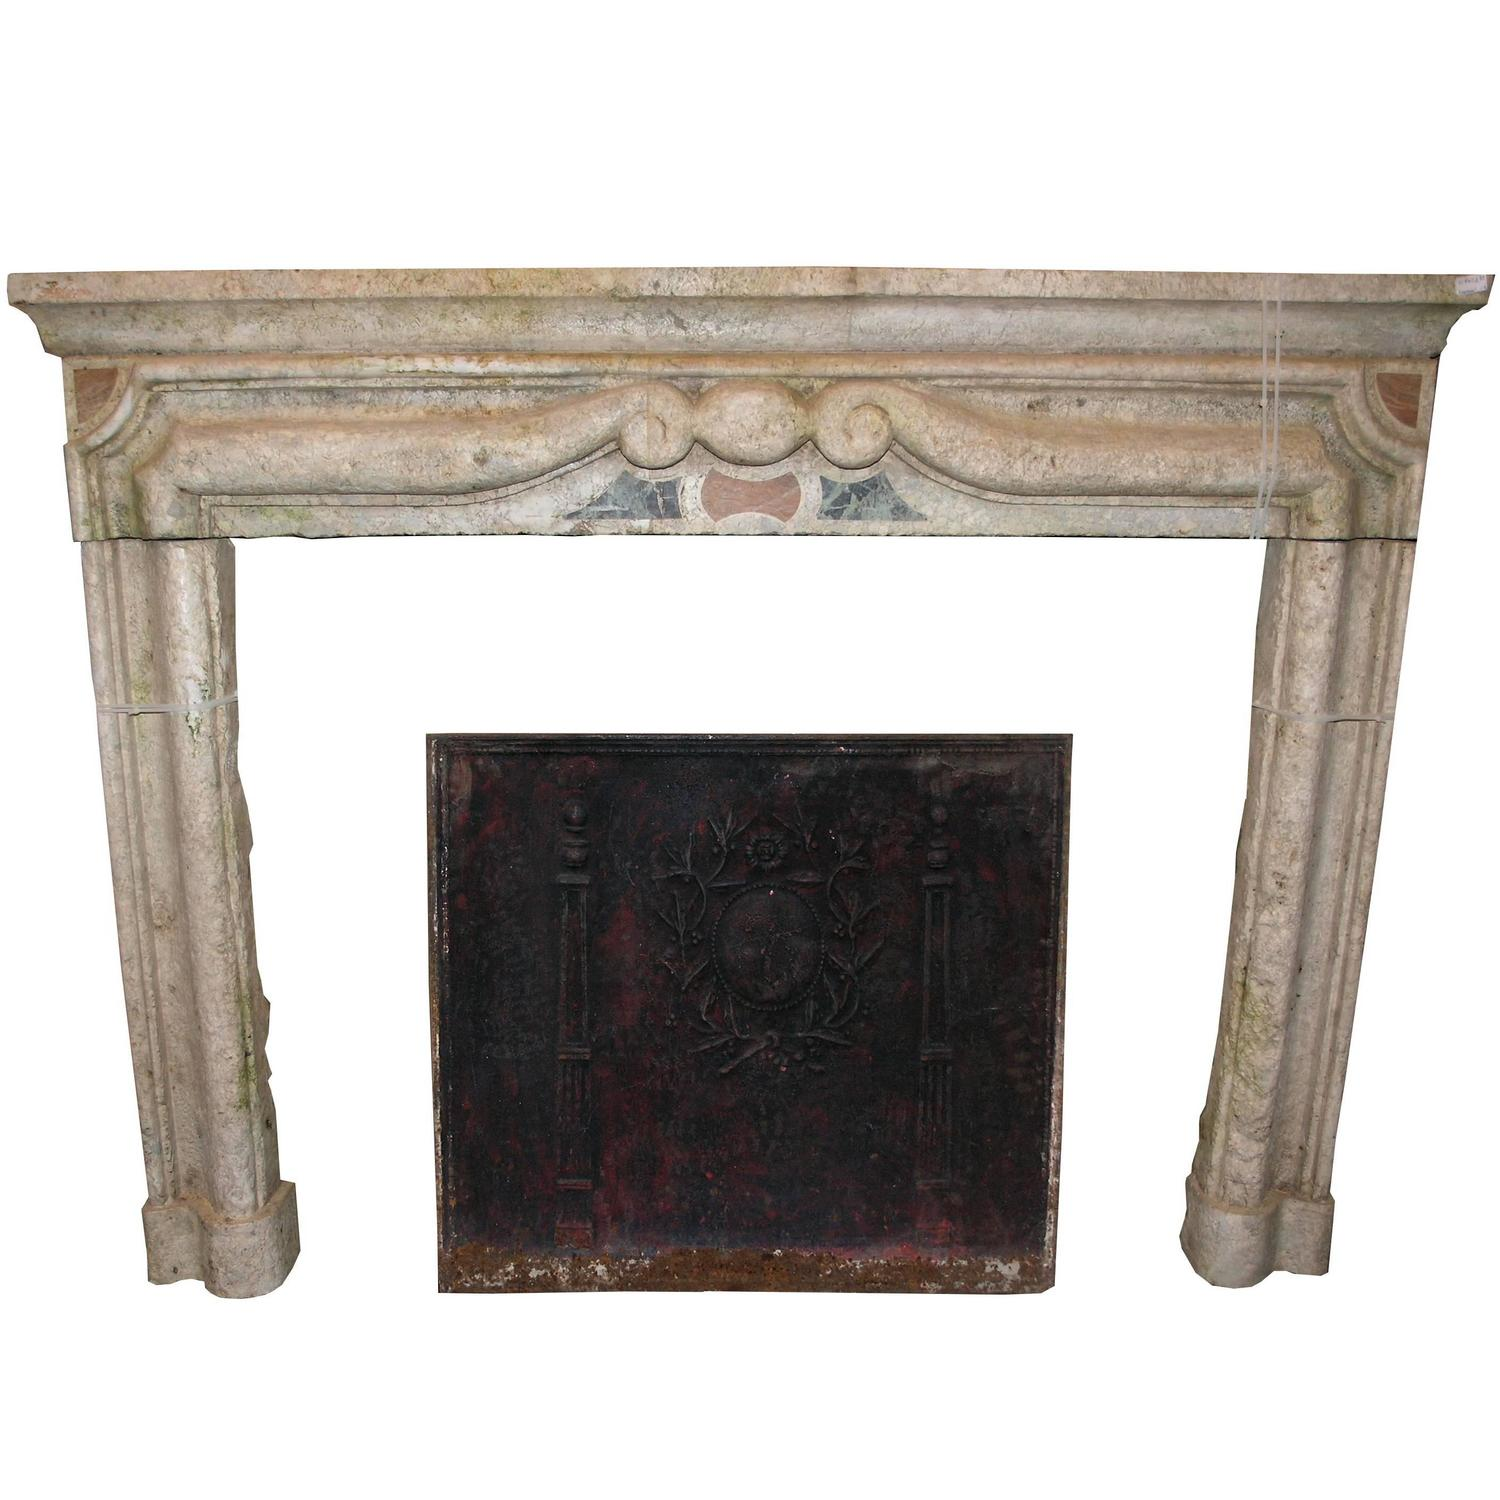 Antique gassino 39 s marble fireplace mantel for sale at 1stdibs for Marble mantels for sale